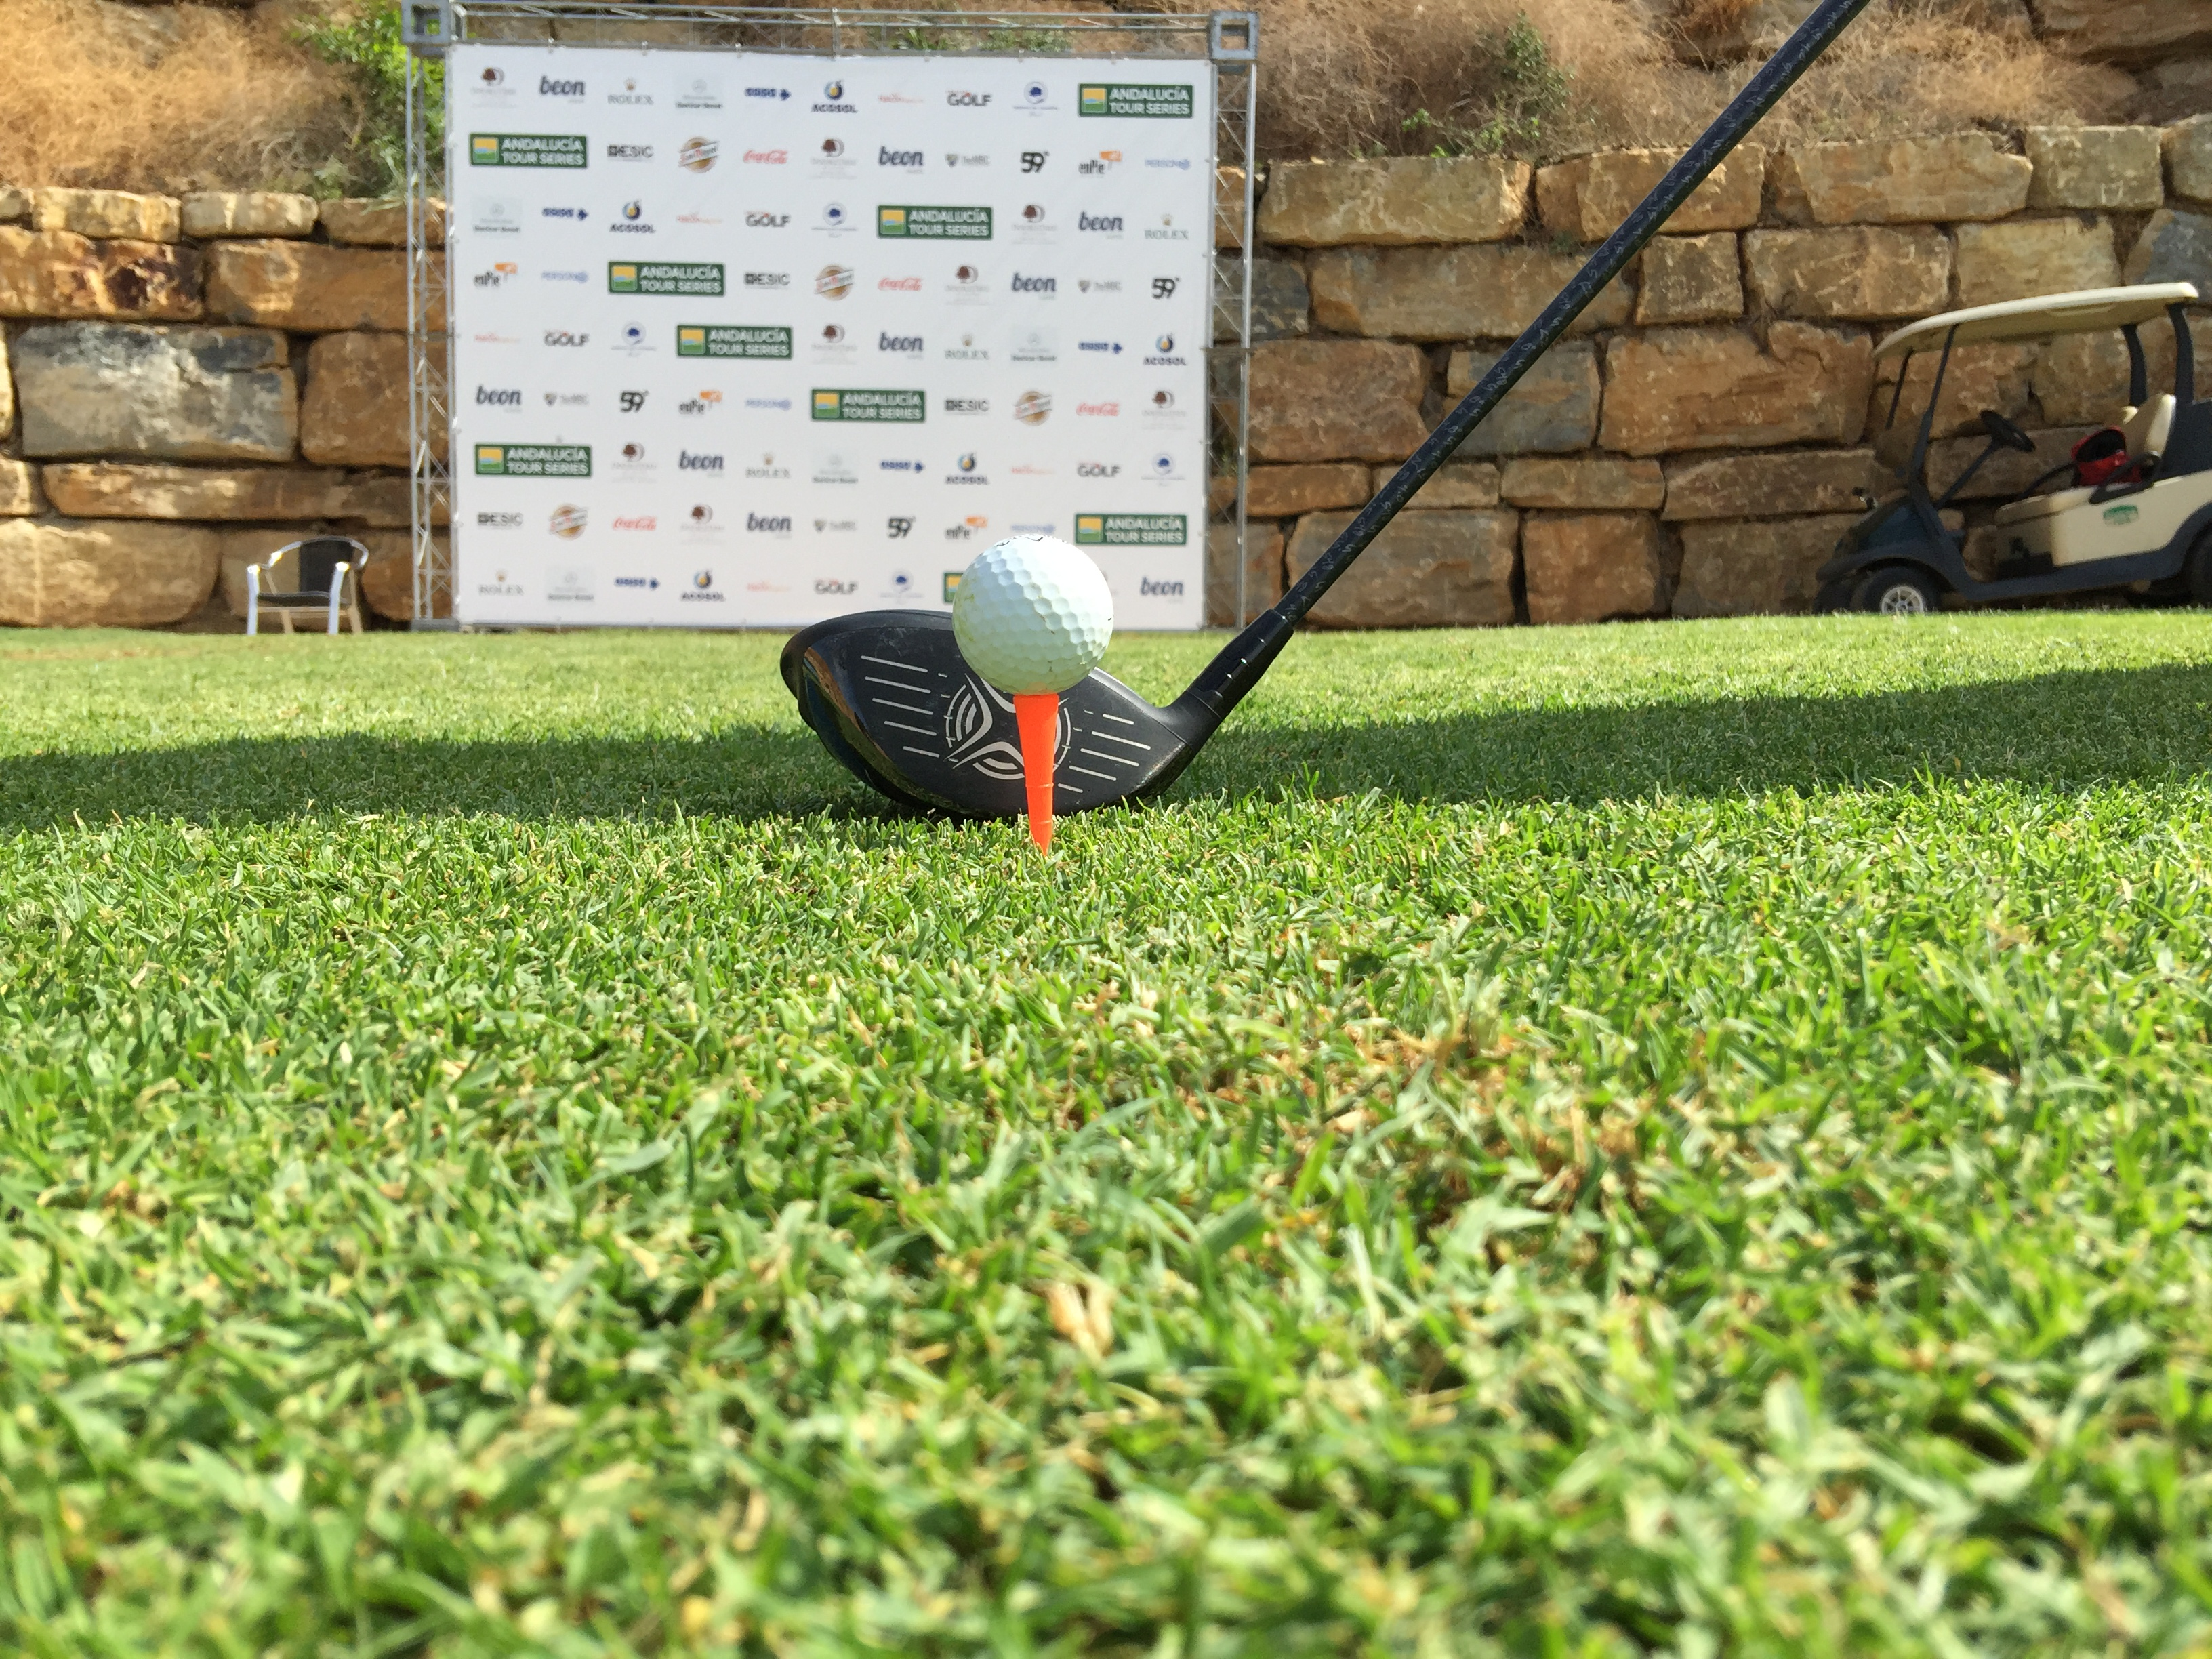 torneo-golf-andalucia-tour-series-sillero-index-golf-club-wood